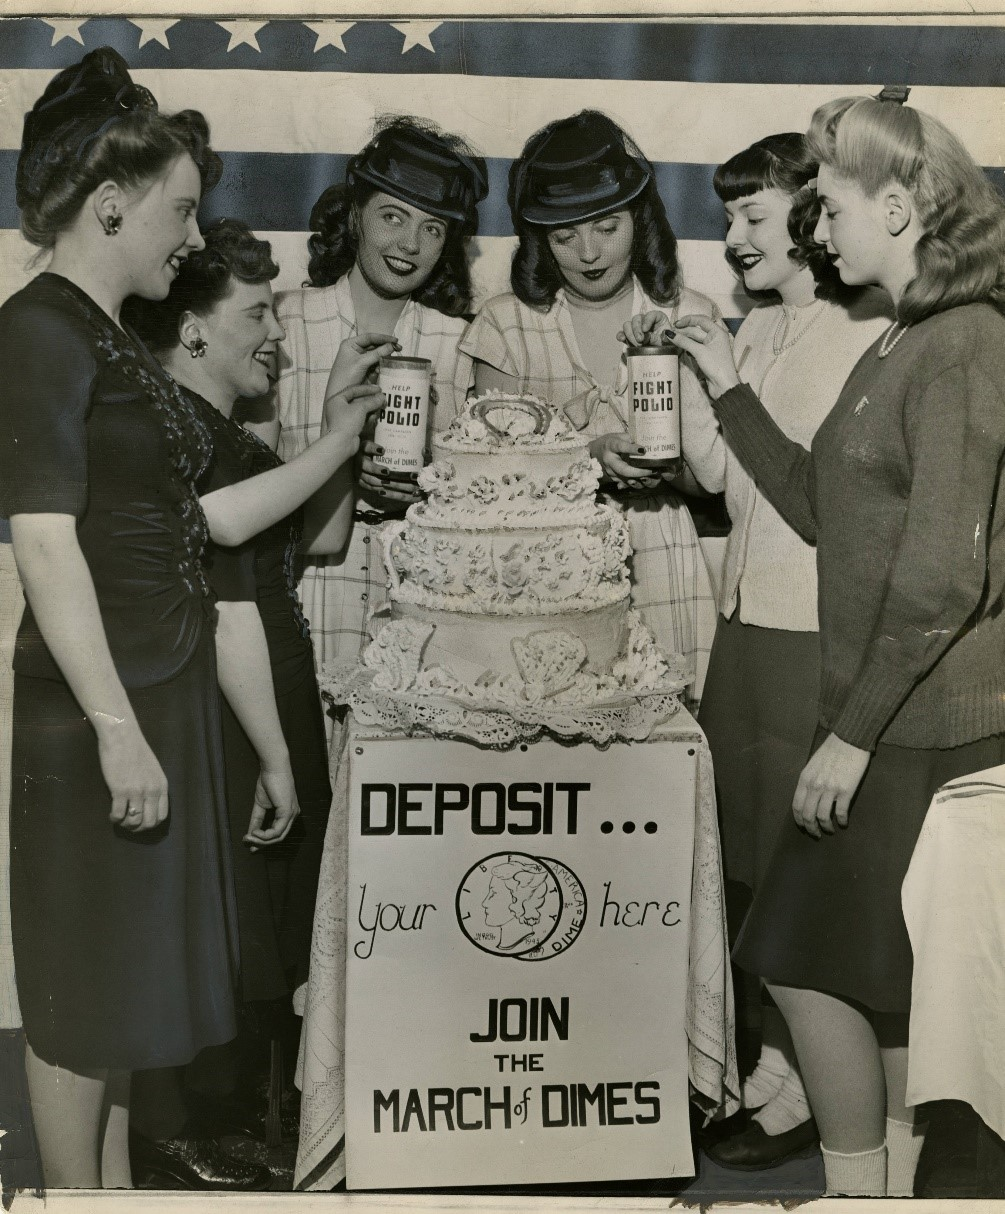 Secretarial students and alumni hold a benefit to fight polio on January 26, 1945.